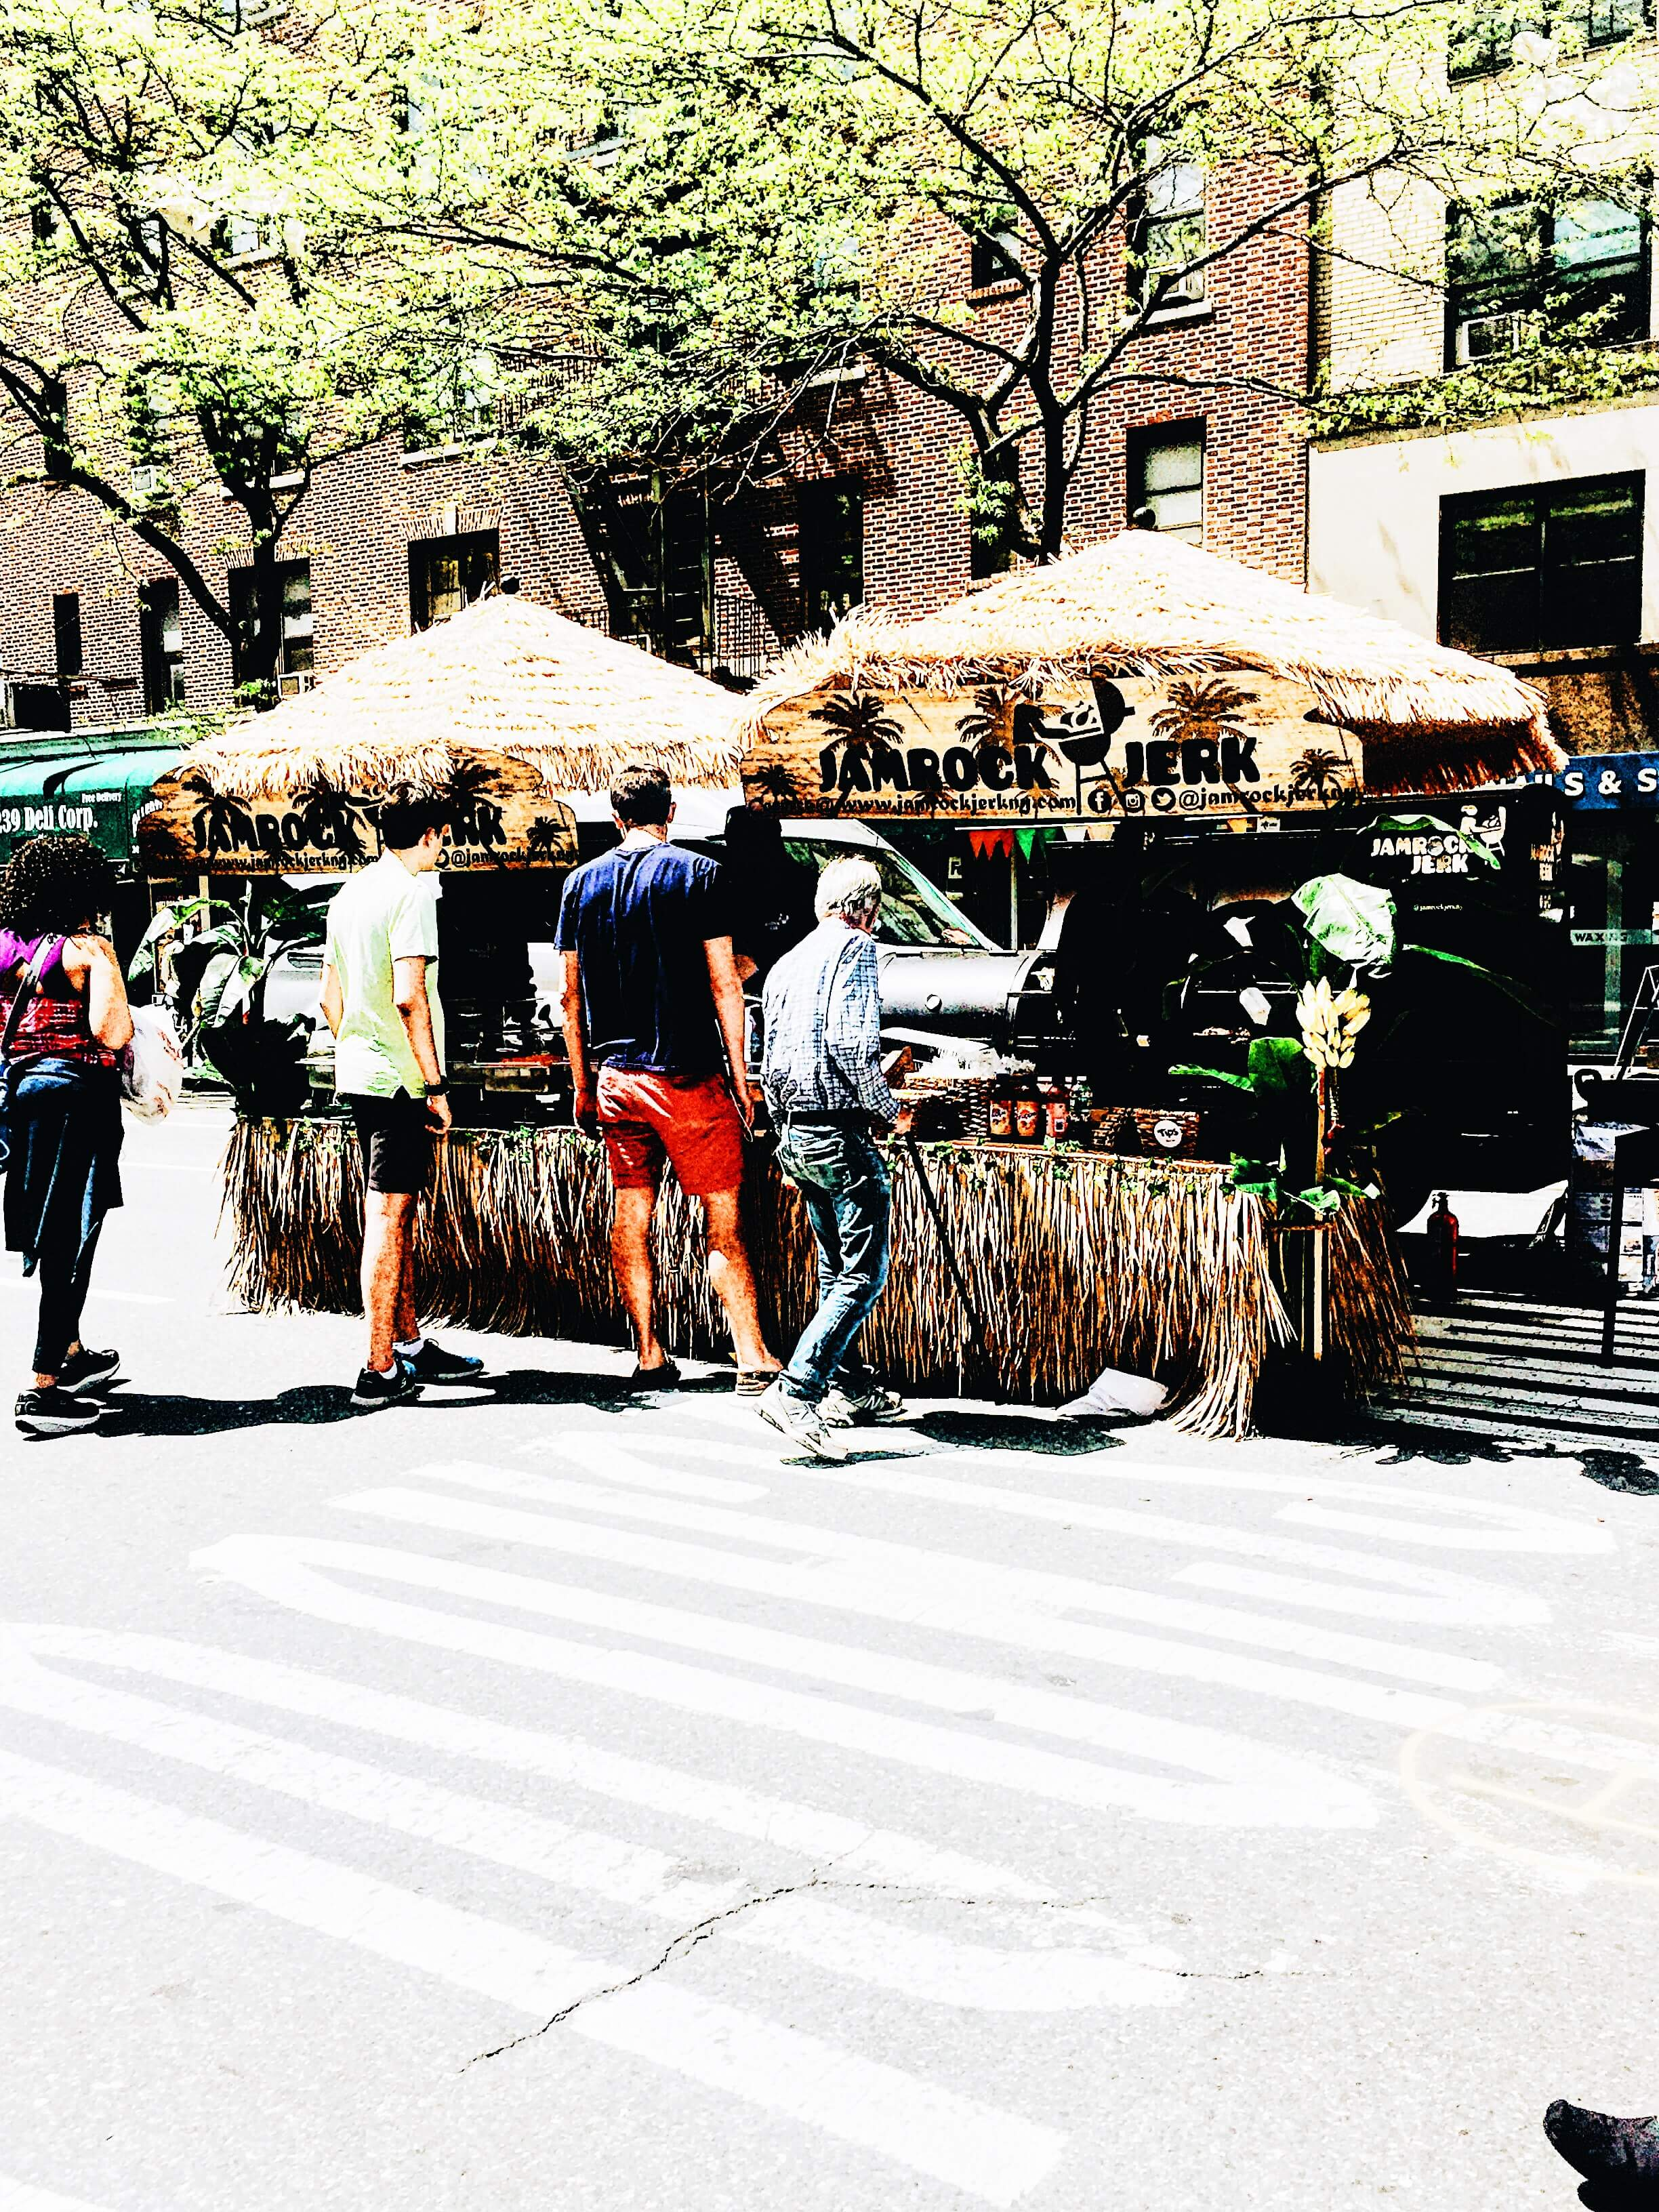 Food Trucks in Chelsea, NYC - For Raha and Lemons